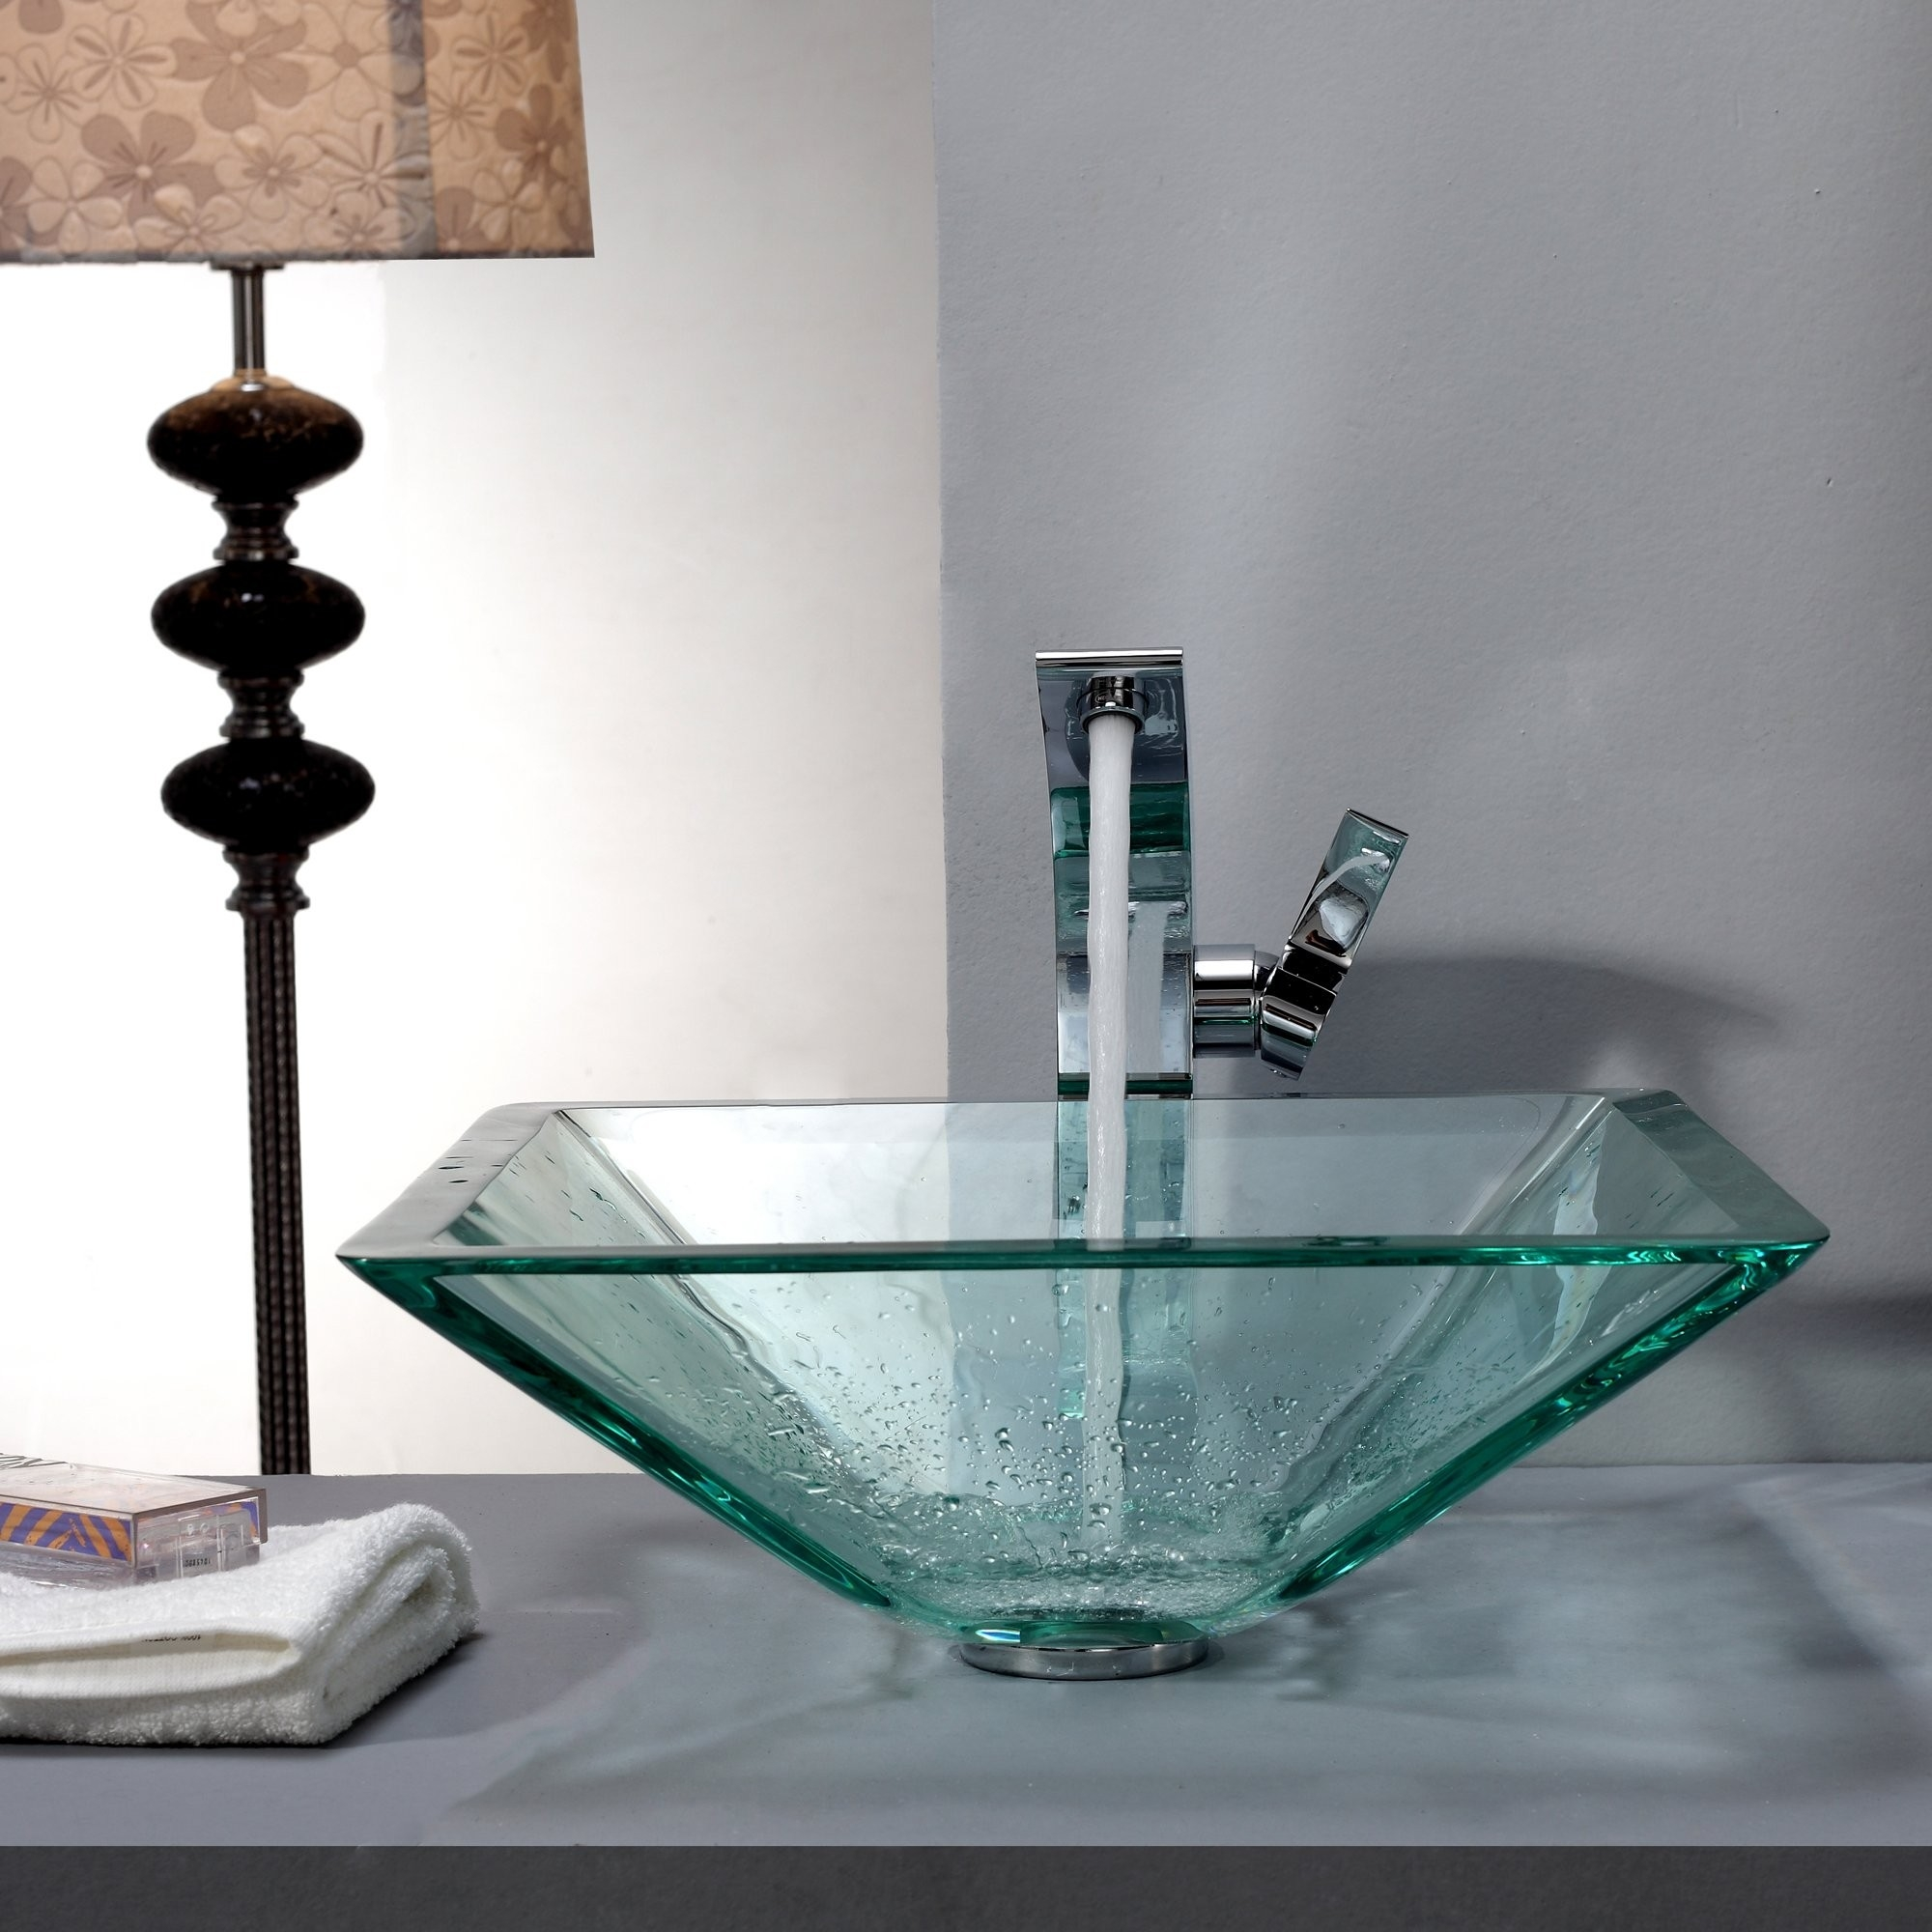 Ideas, square vessel sinks with faucets square vessel sinks with faucets bathroom glass vessel sink and faucet combination kraususa 2000 x 2000  .